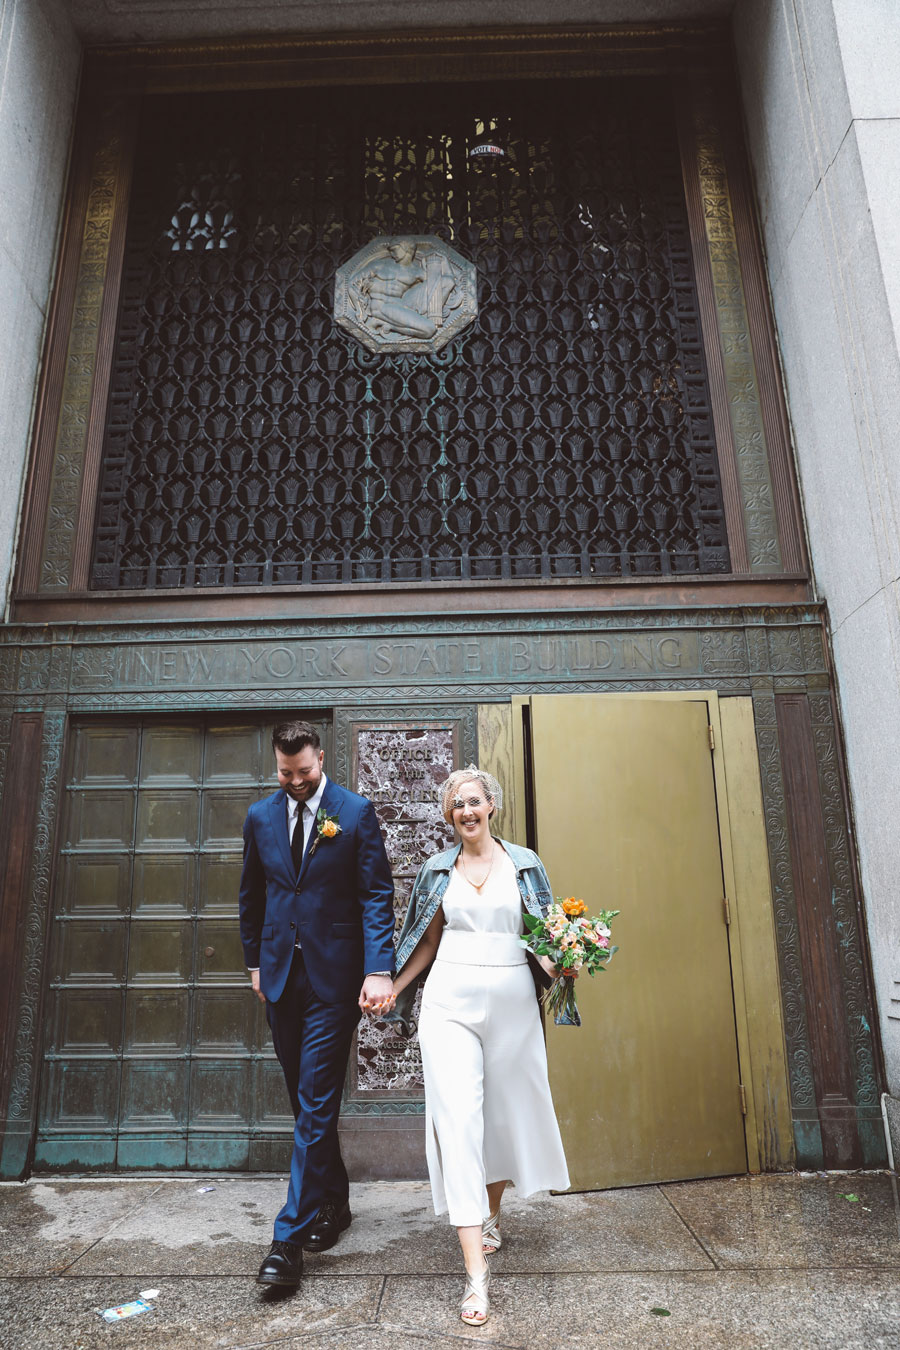 Elope to NYC City Hall